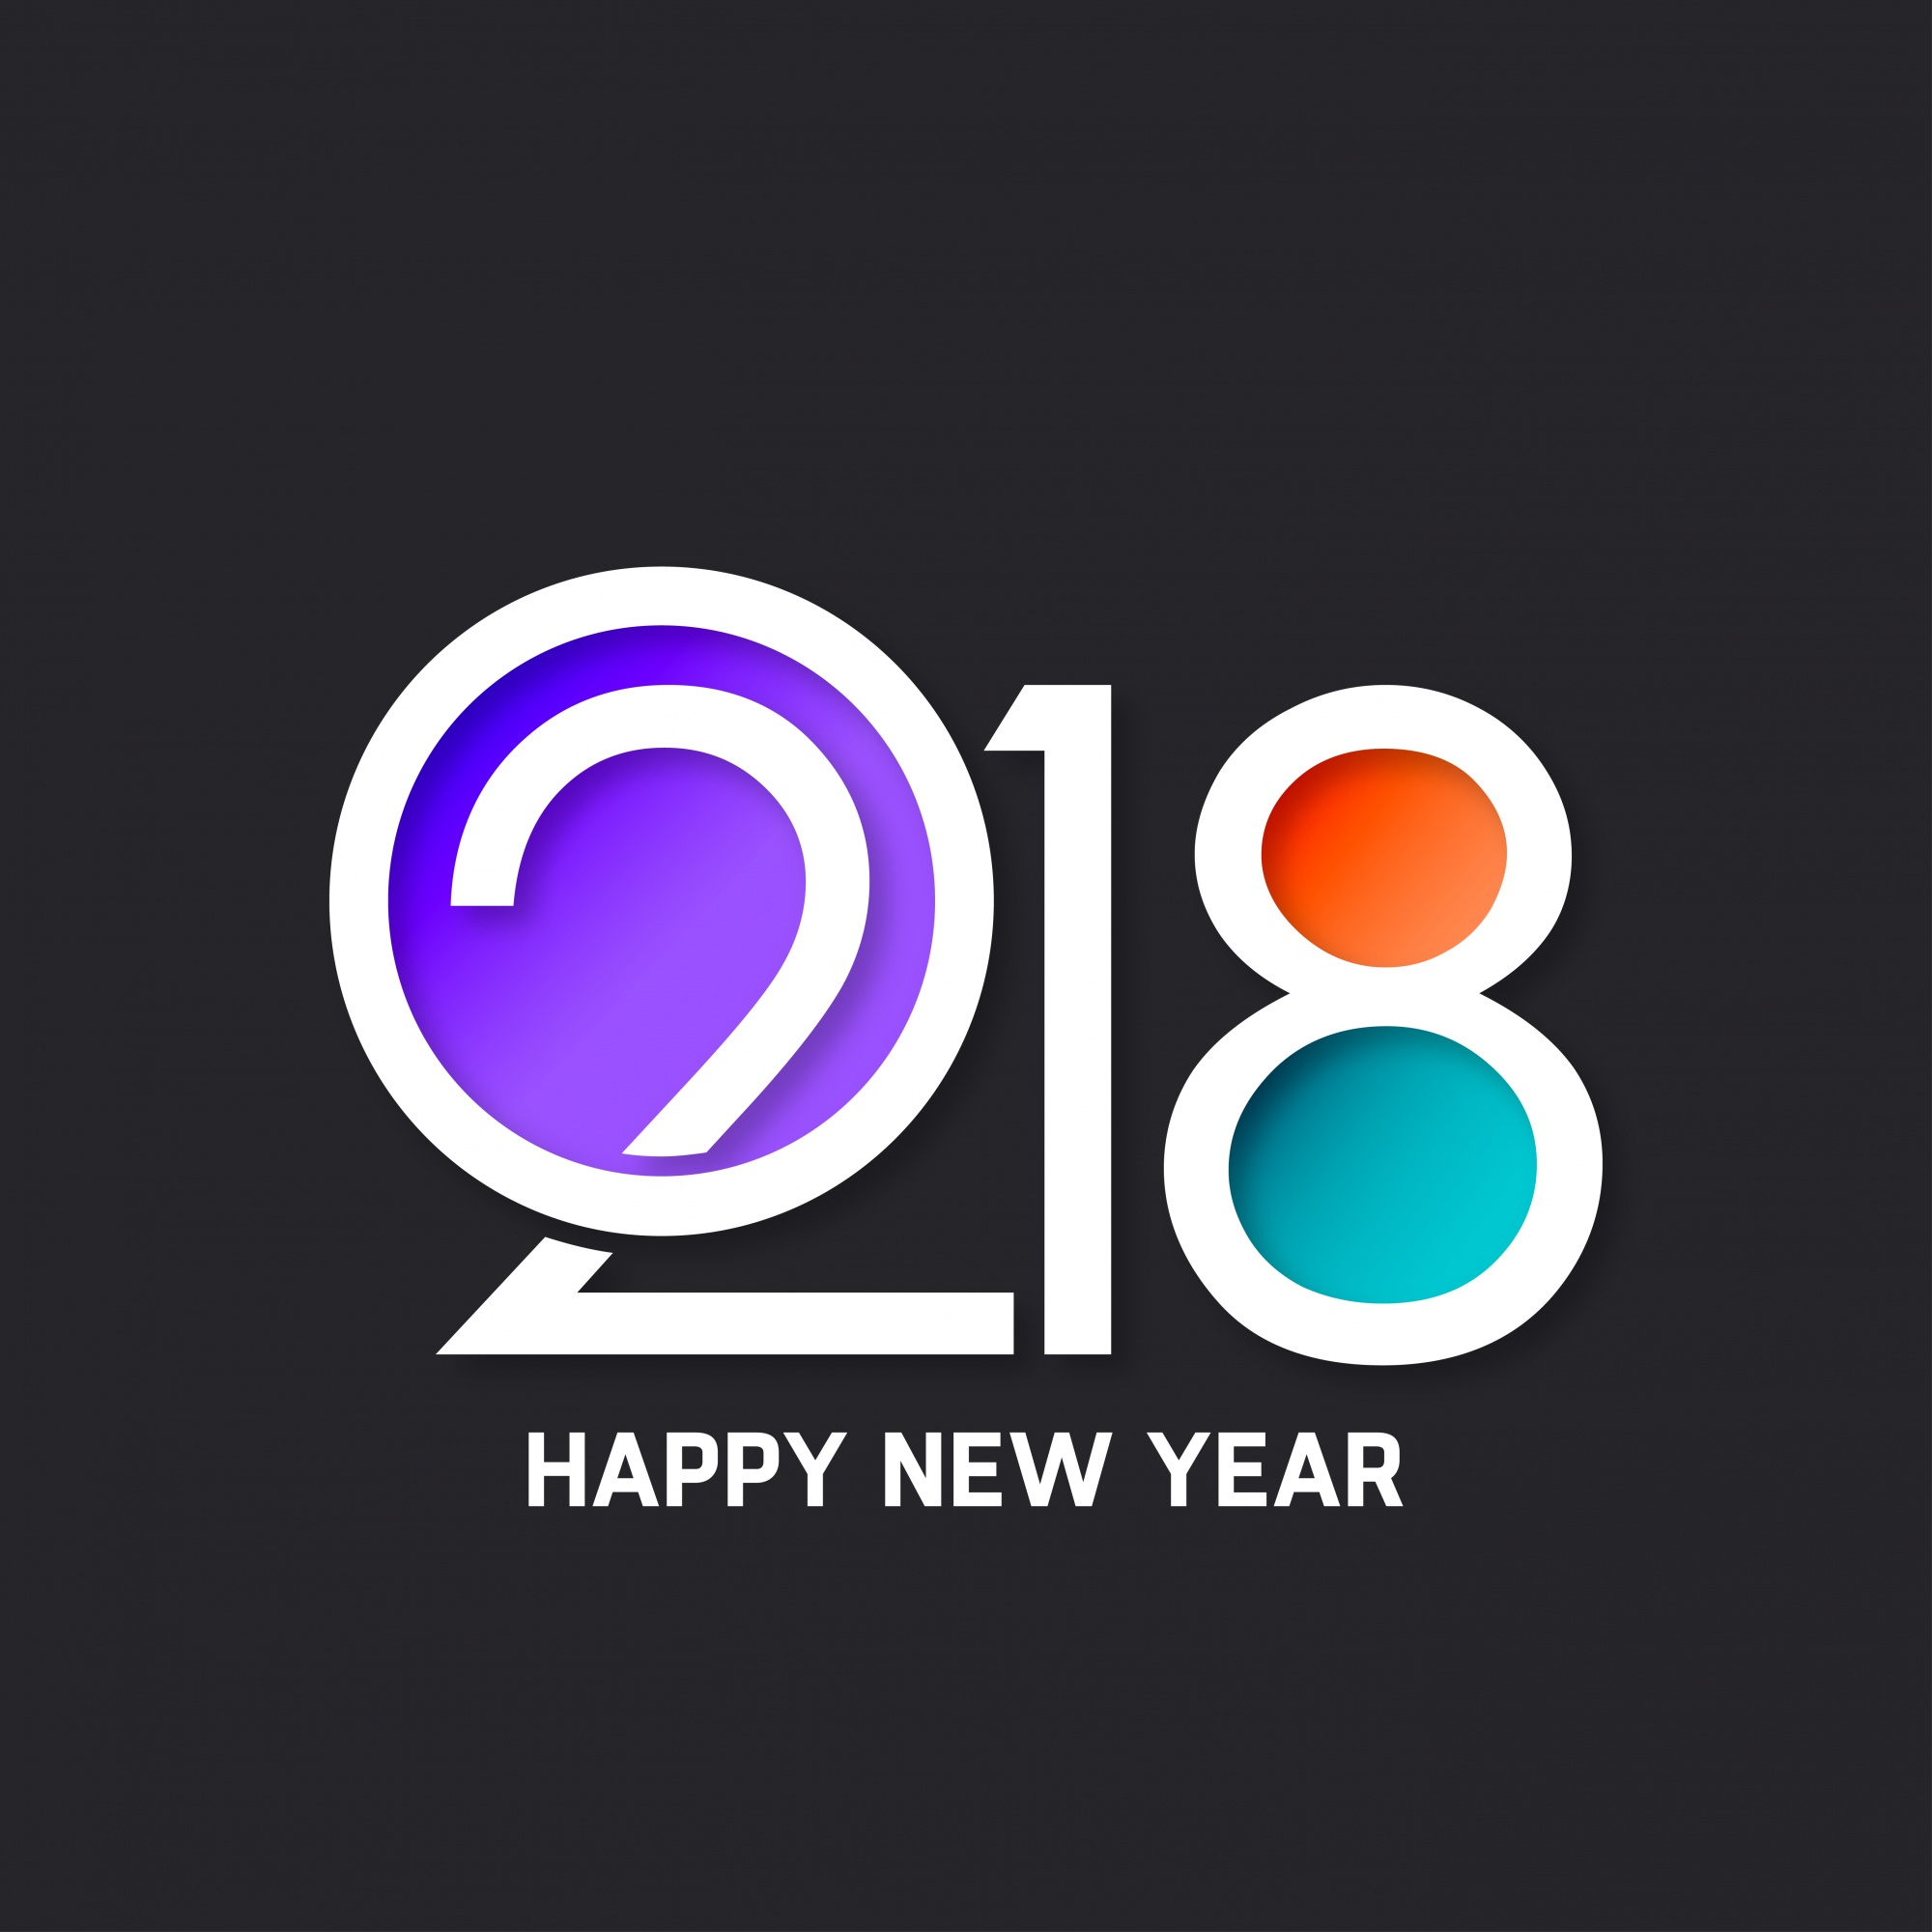 Modern new year 2018 design